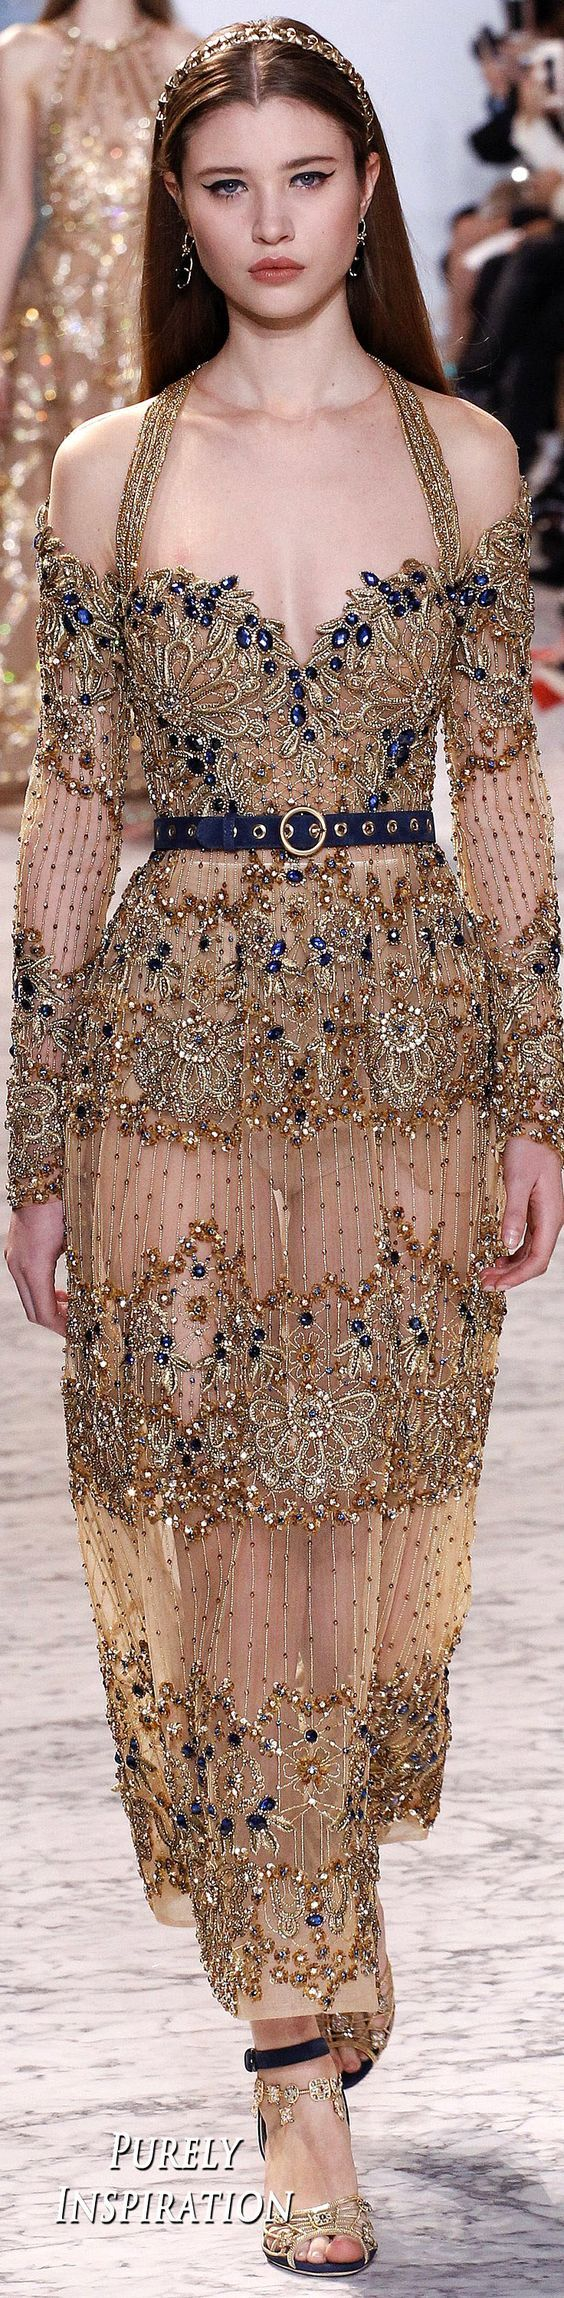 Elie Saab 2017 Spring Haute Couture Women's Fashion   Purely Inspiration: